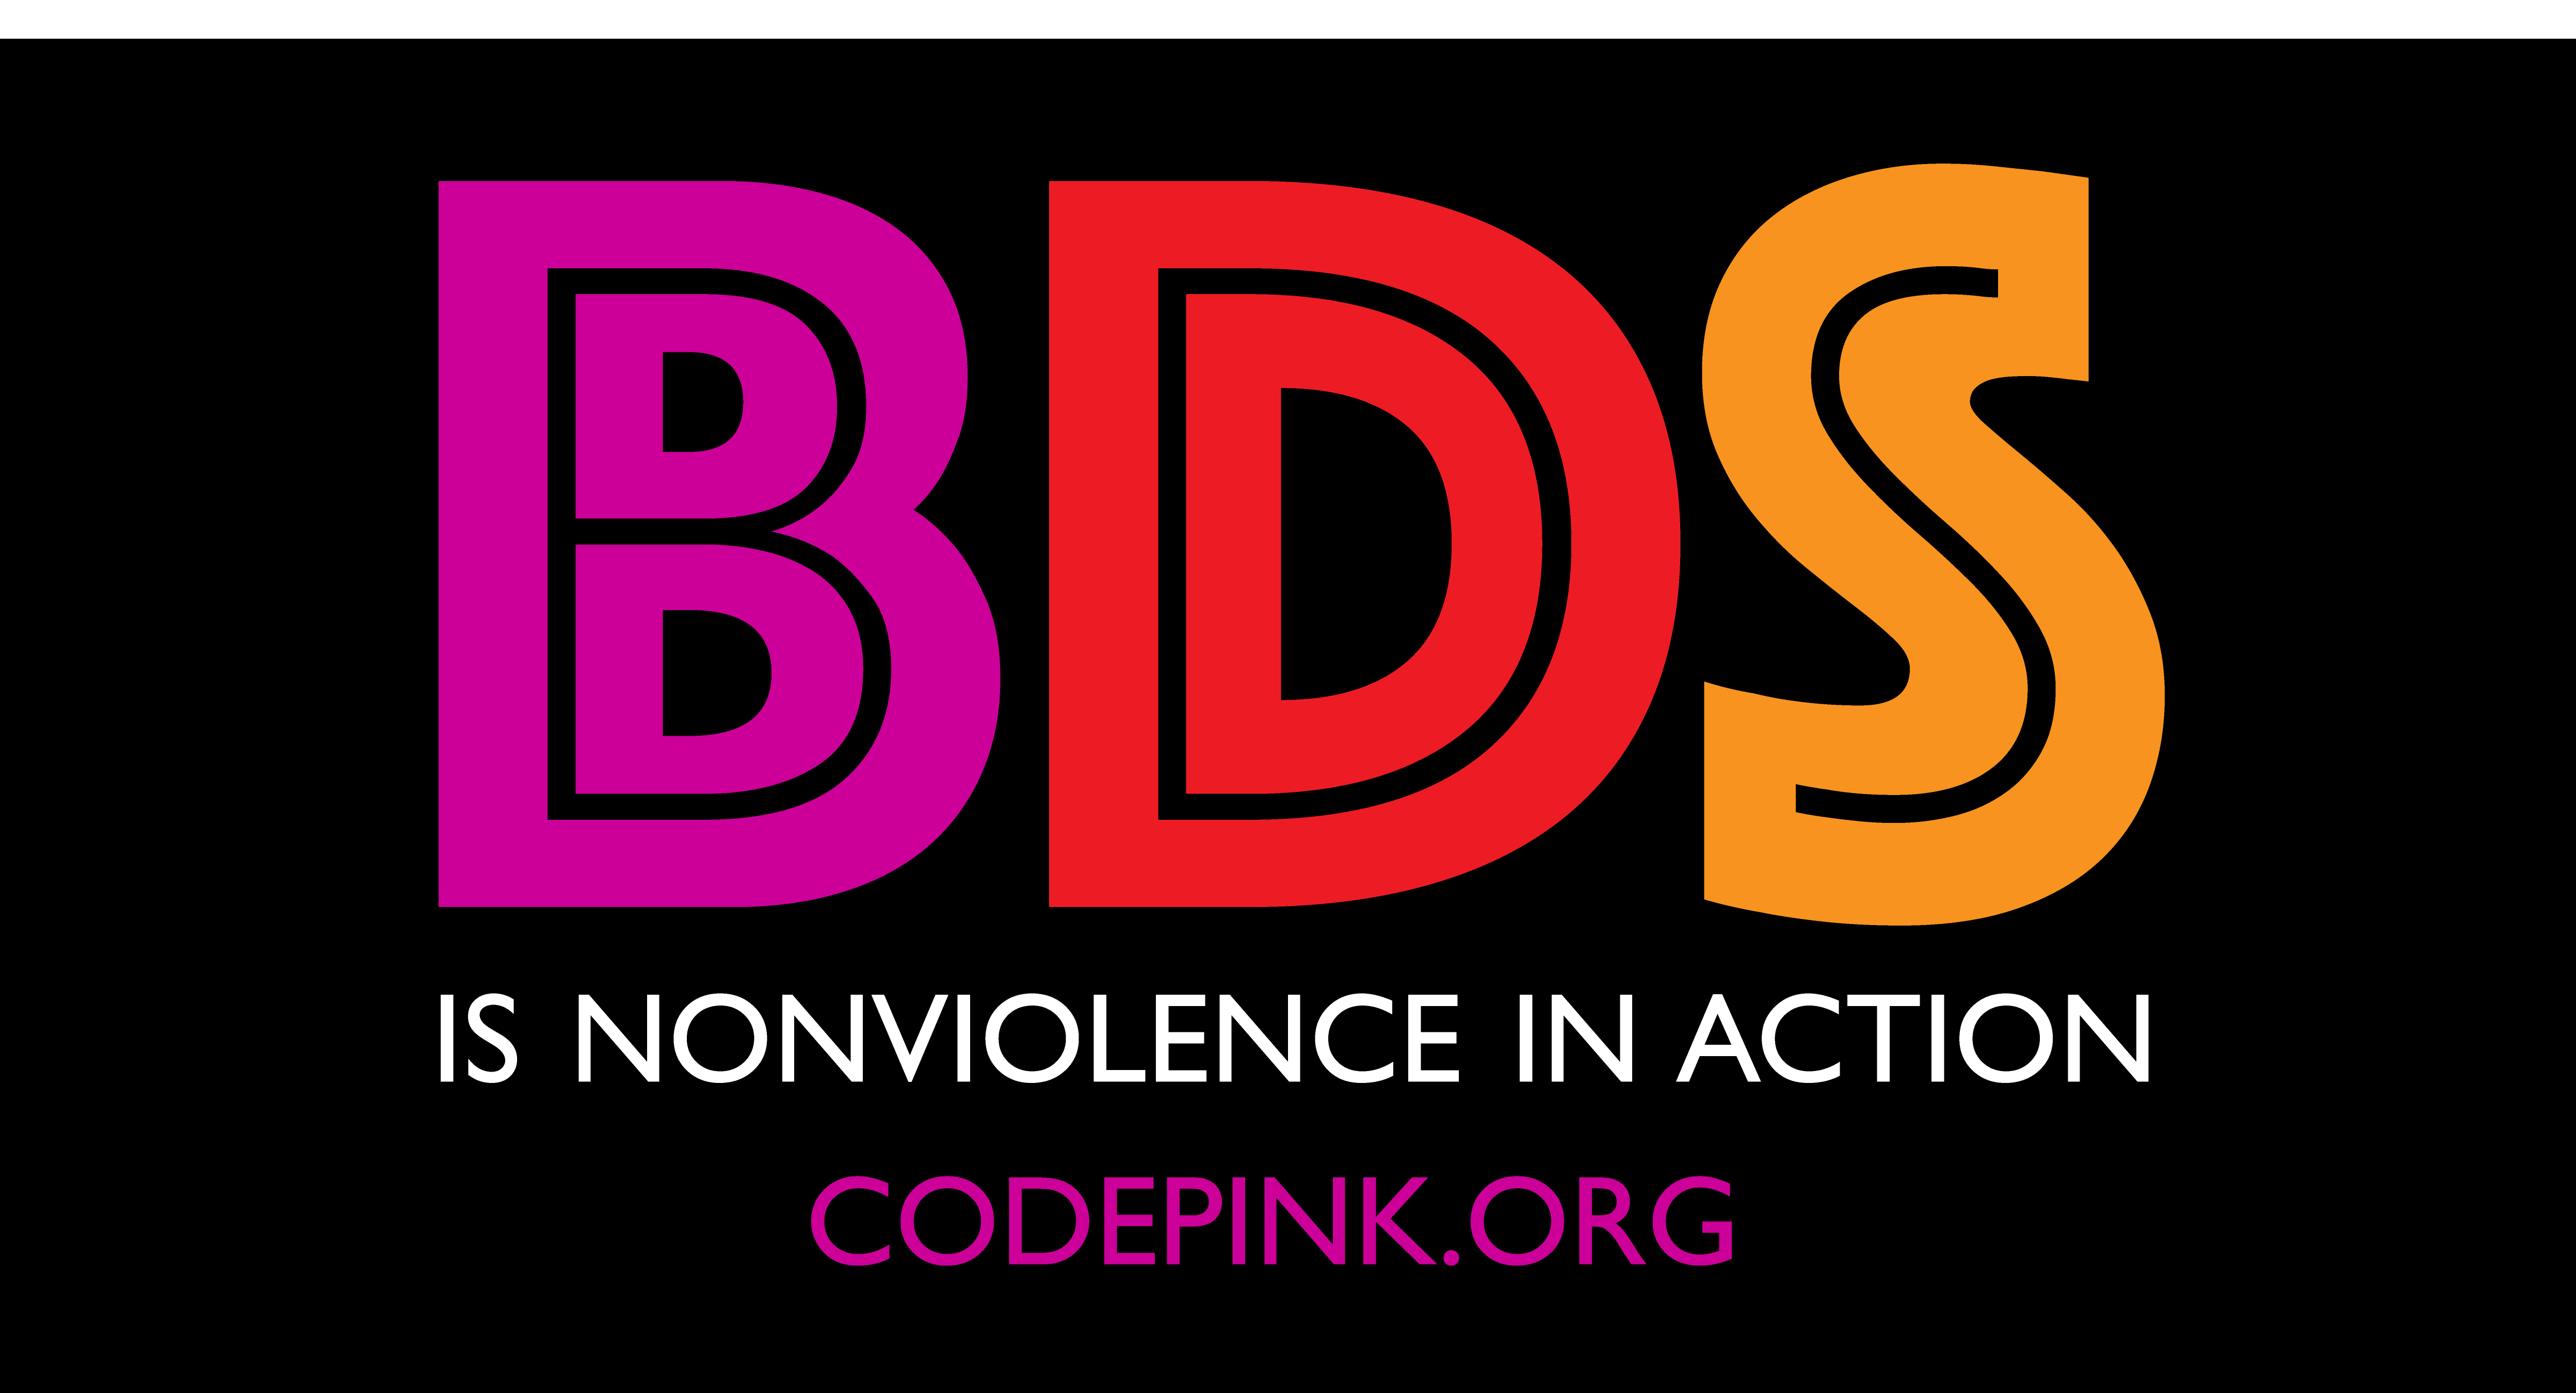 BDS_CP.png